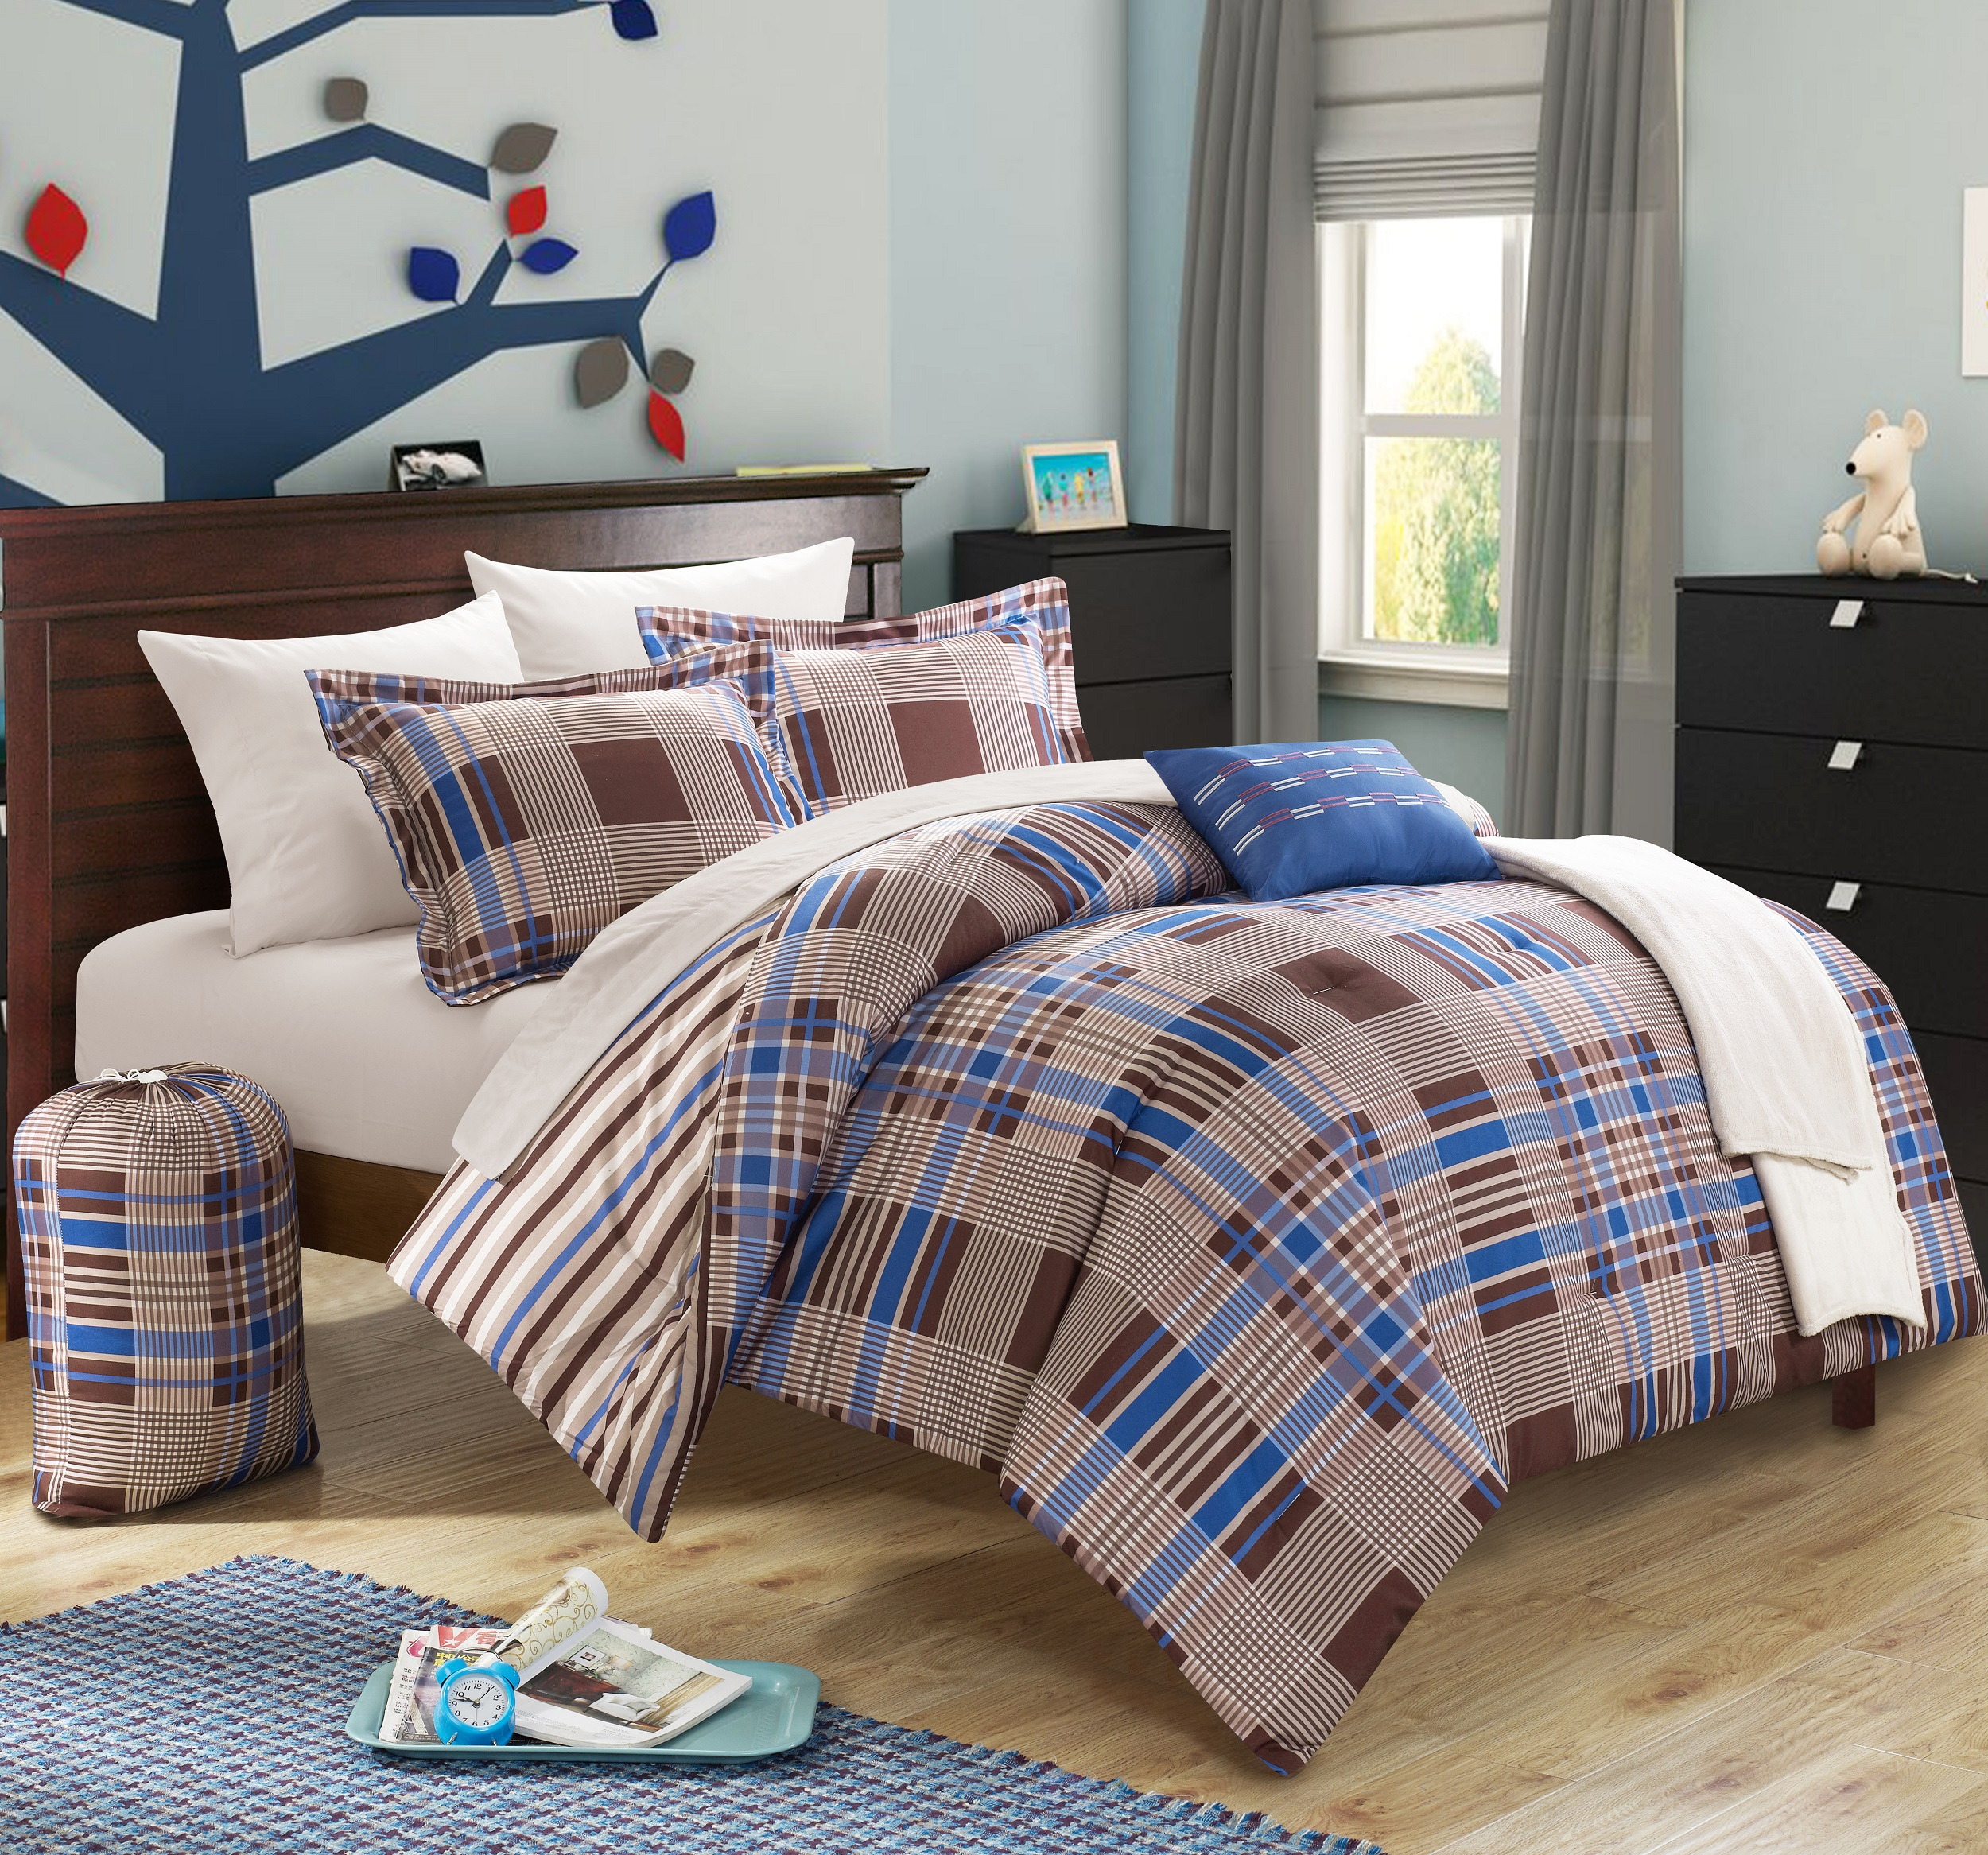 Chic Home Cambridge 10 Piece Reversible Bed In a Bag Comforter Set